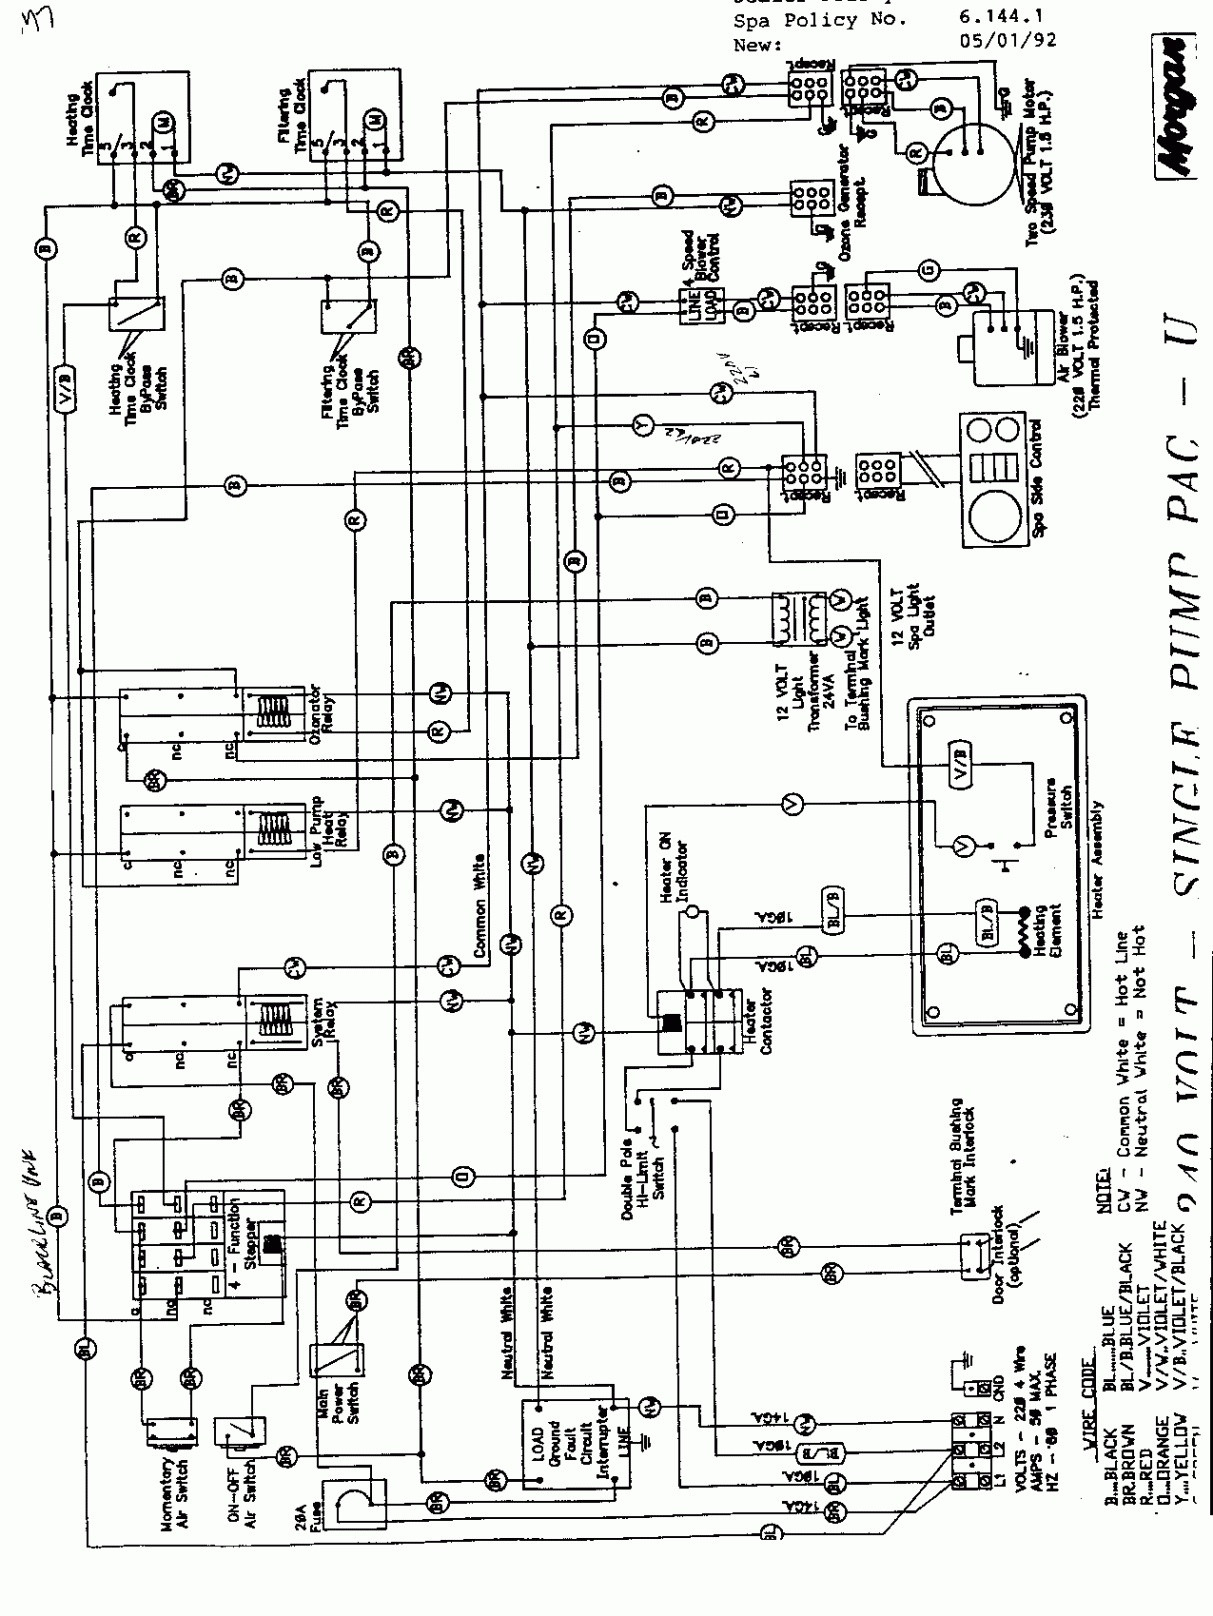 great lakes spa wiring diagram